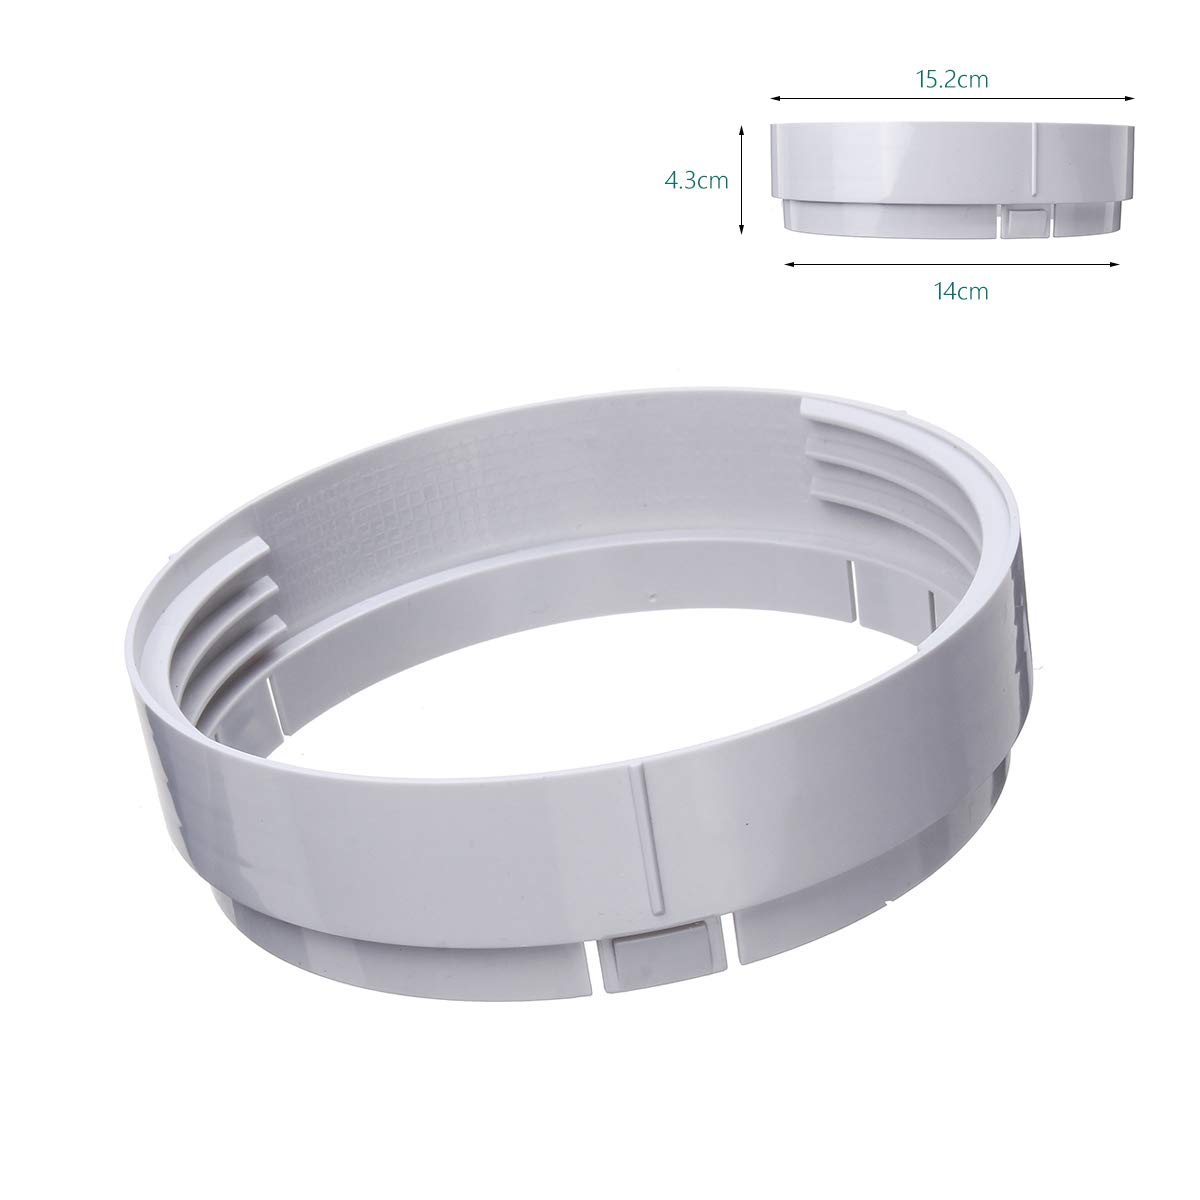 ExcLent 15Cm Window Adaptor Tube Connector For Portable Air Conditioner Exhaust Kit Plate